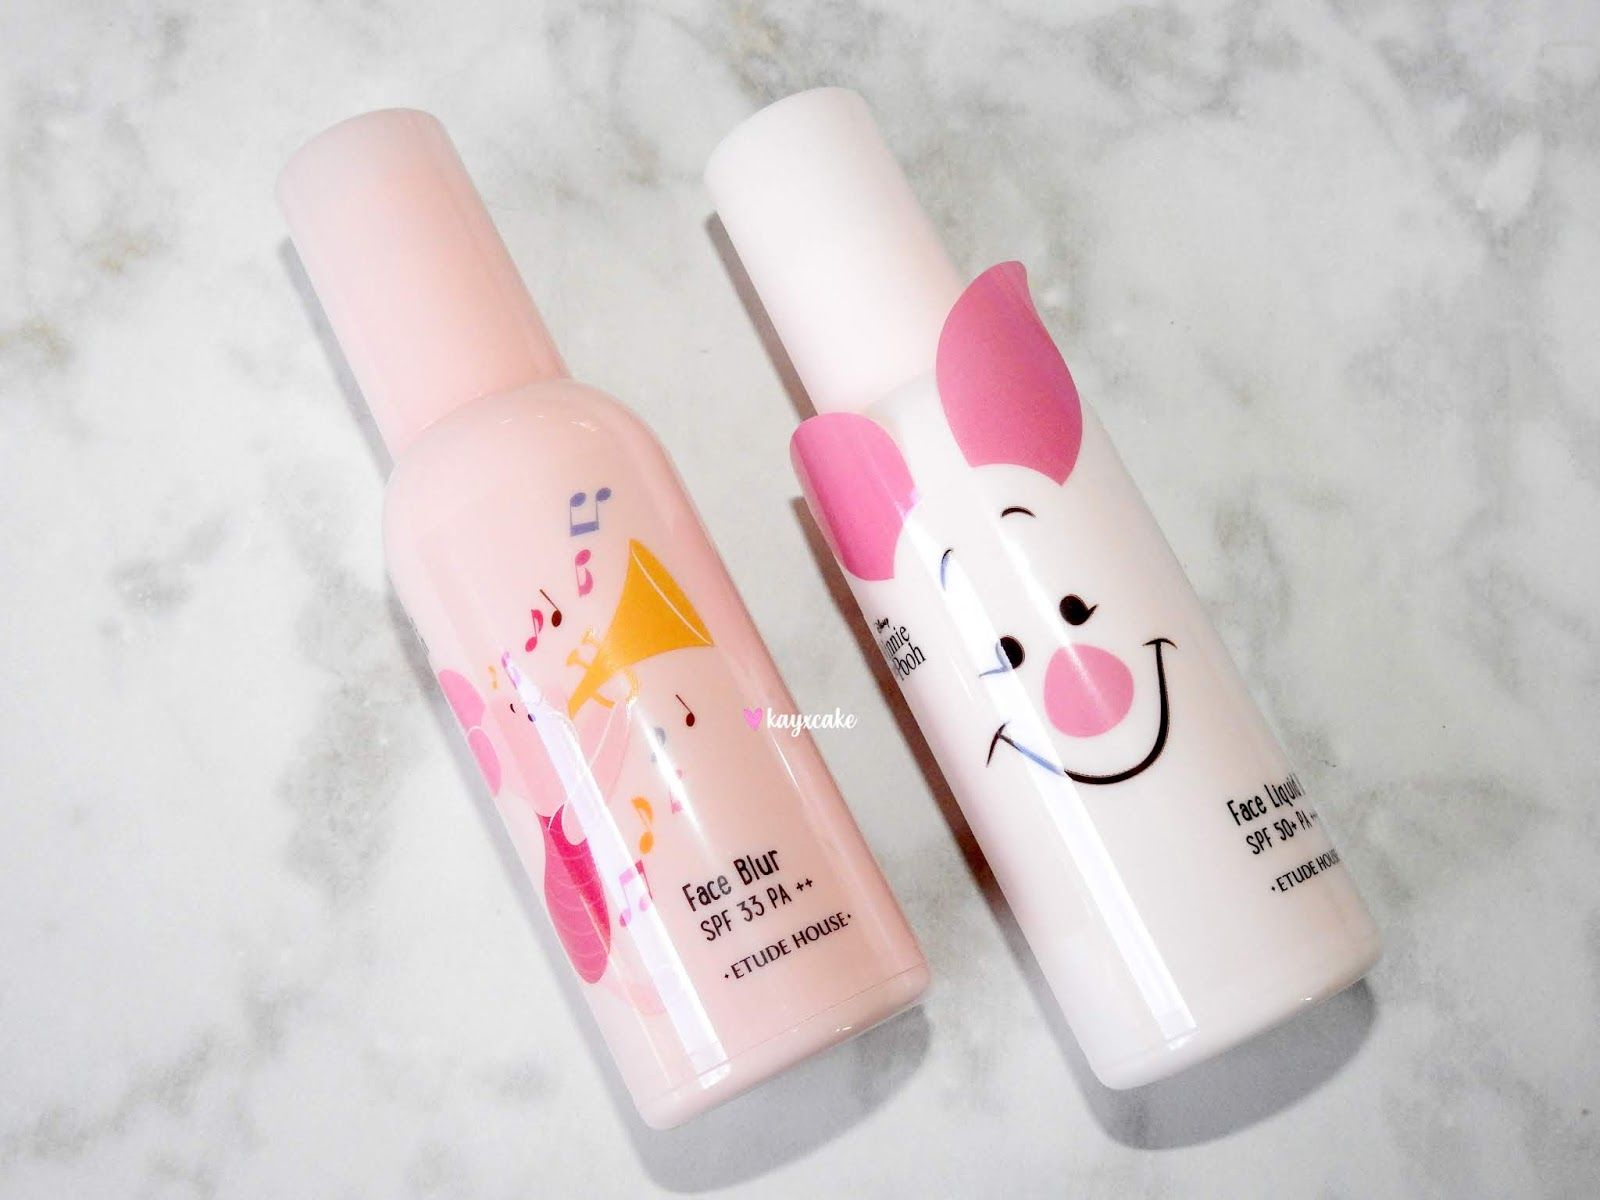 Etude House Happy With Piglet Collection Review Swatches Etude House Swatch Makeup Reviews